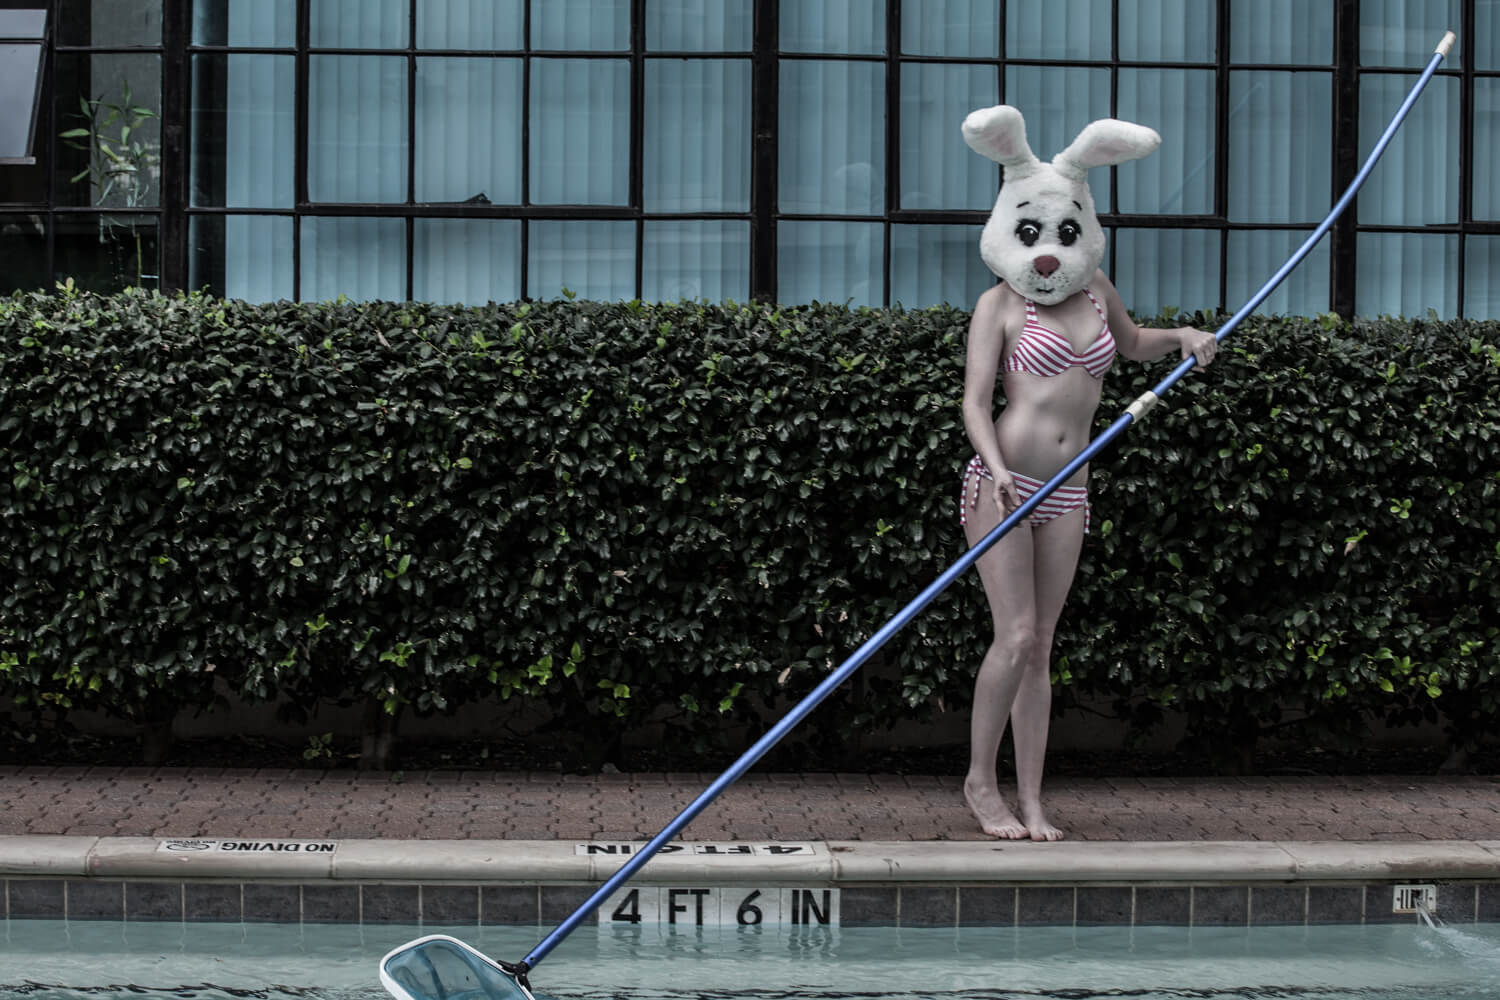 Personal project - White Rabbit: Cleaning the pool in a bikini